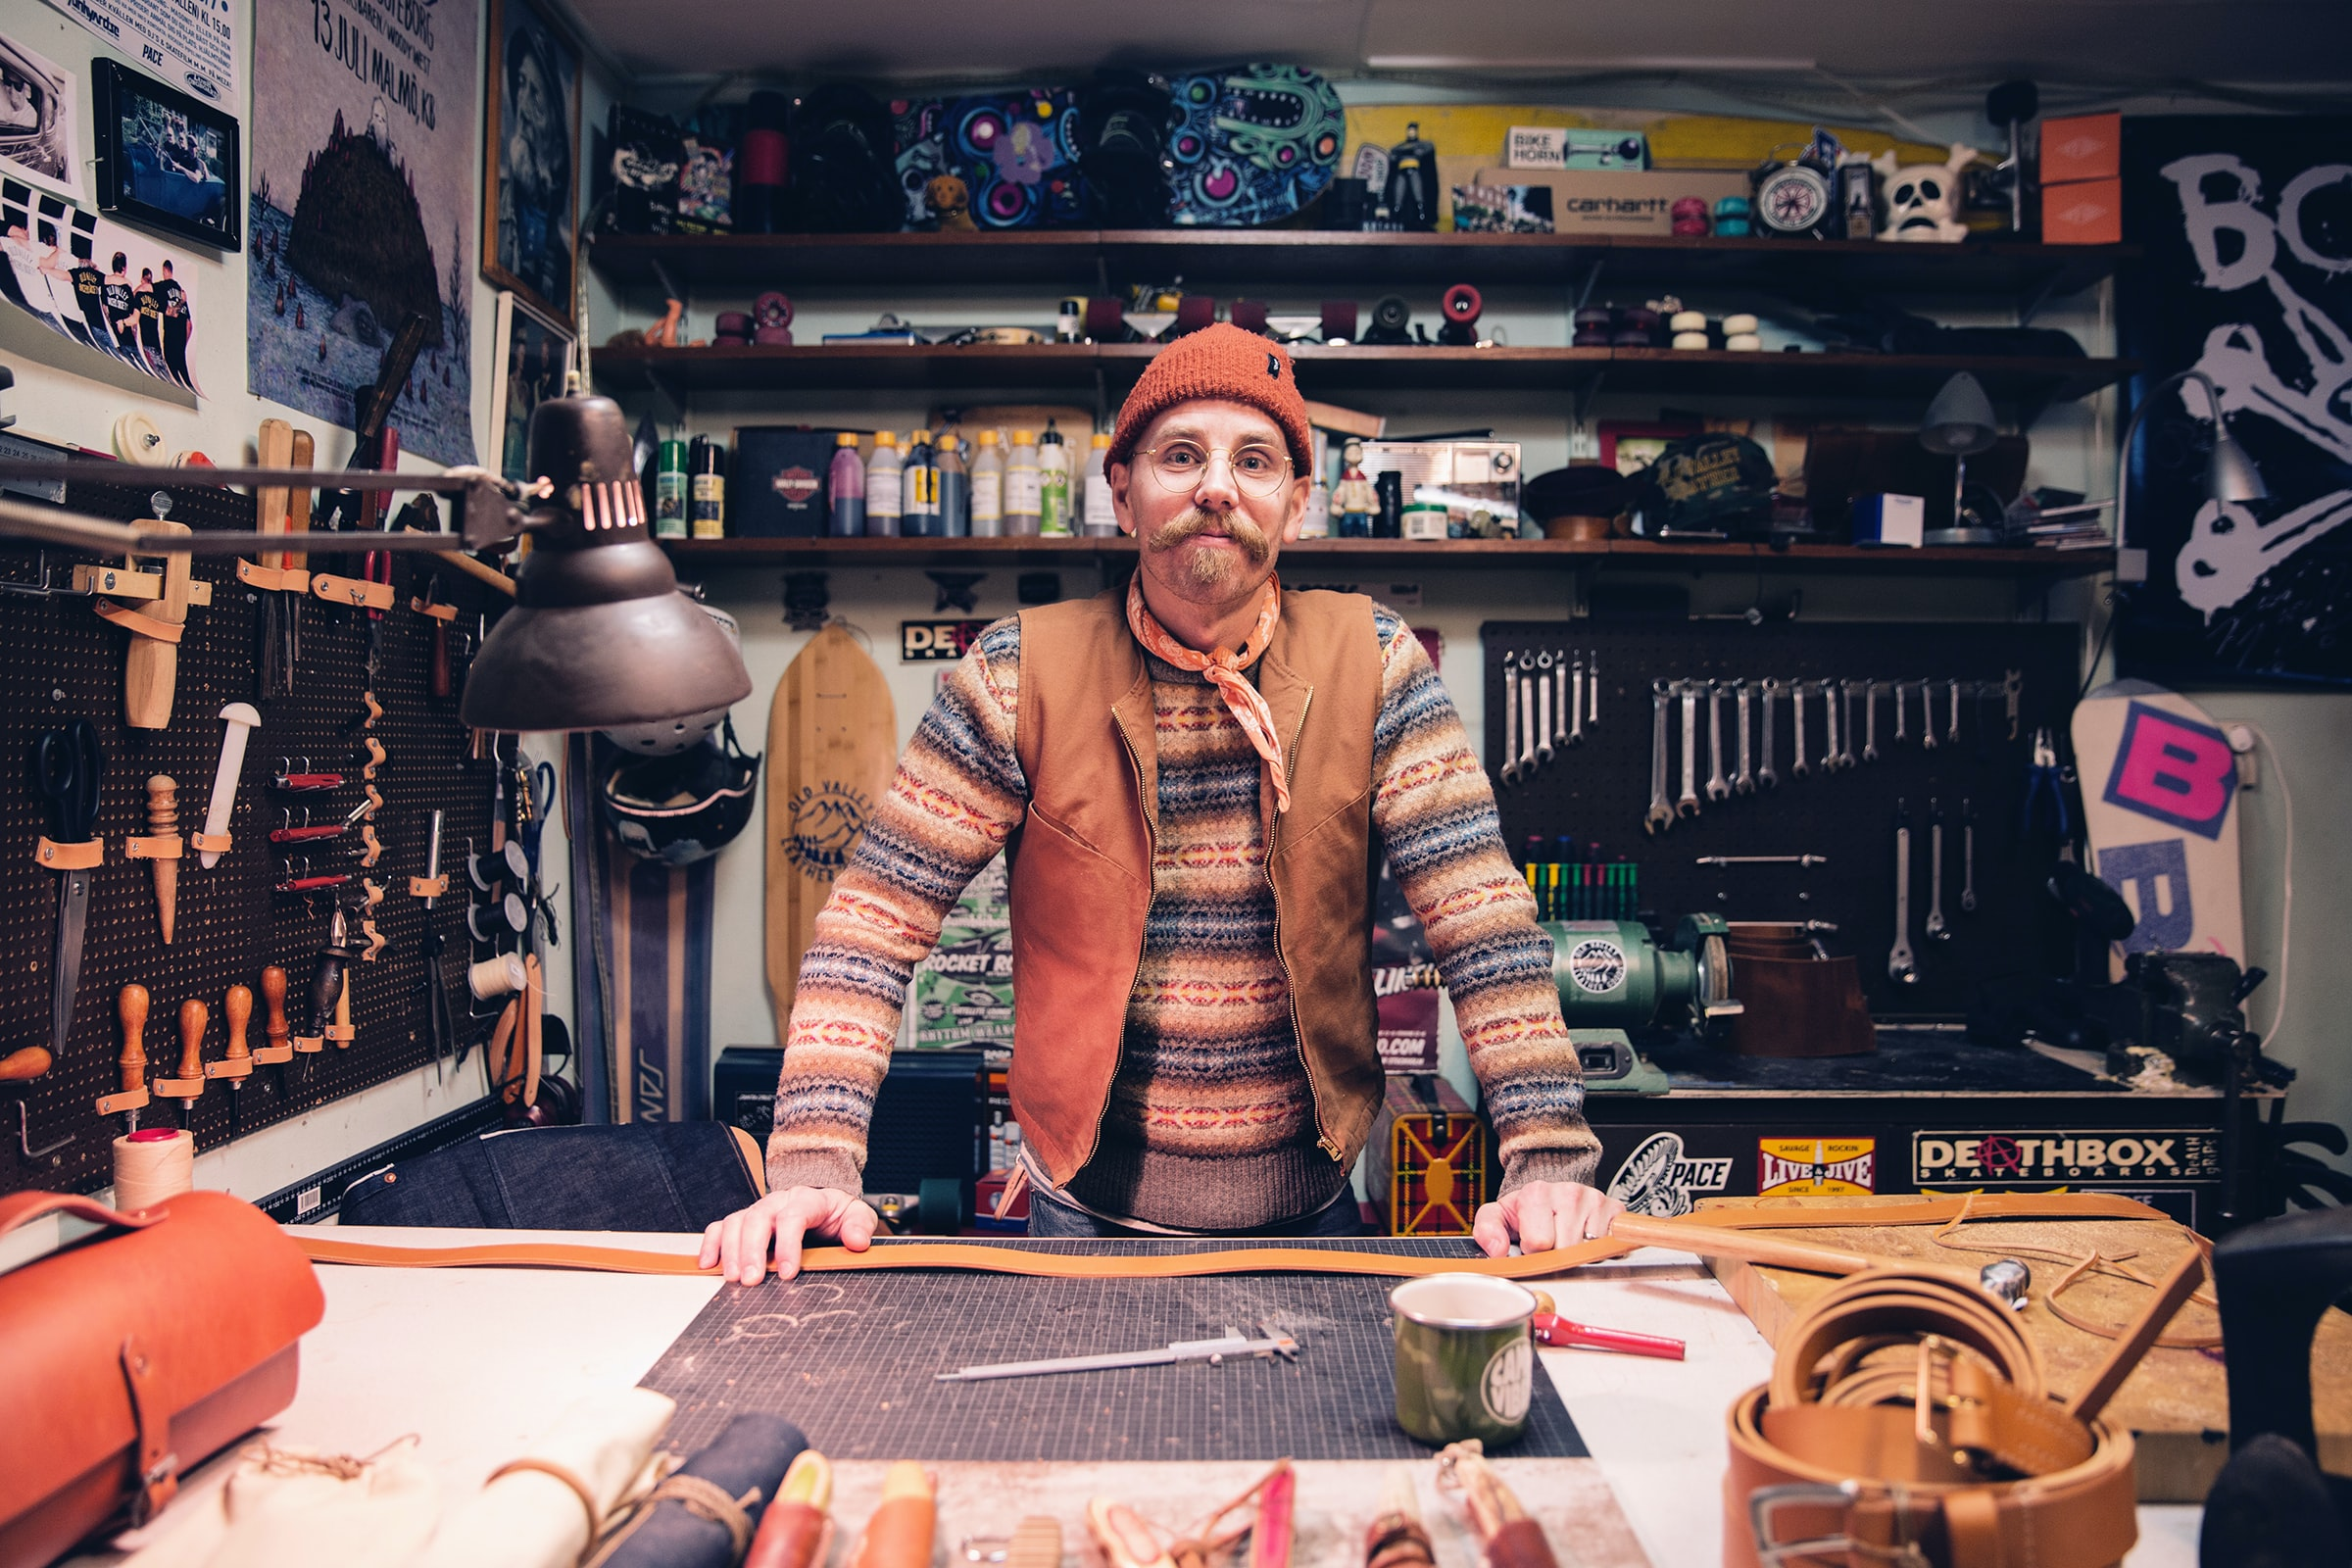 A middle-aged man in a knit cap behind a workbench in a workshop